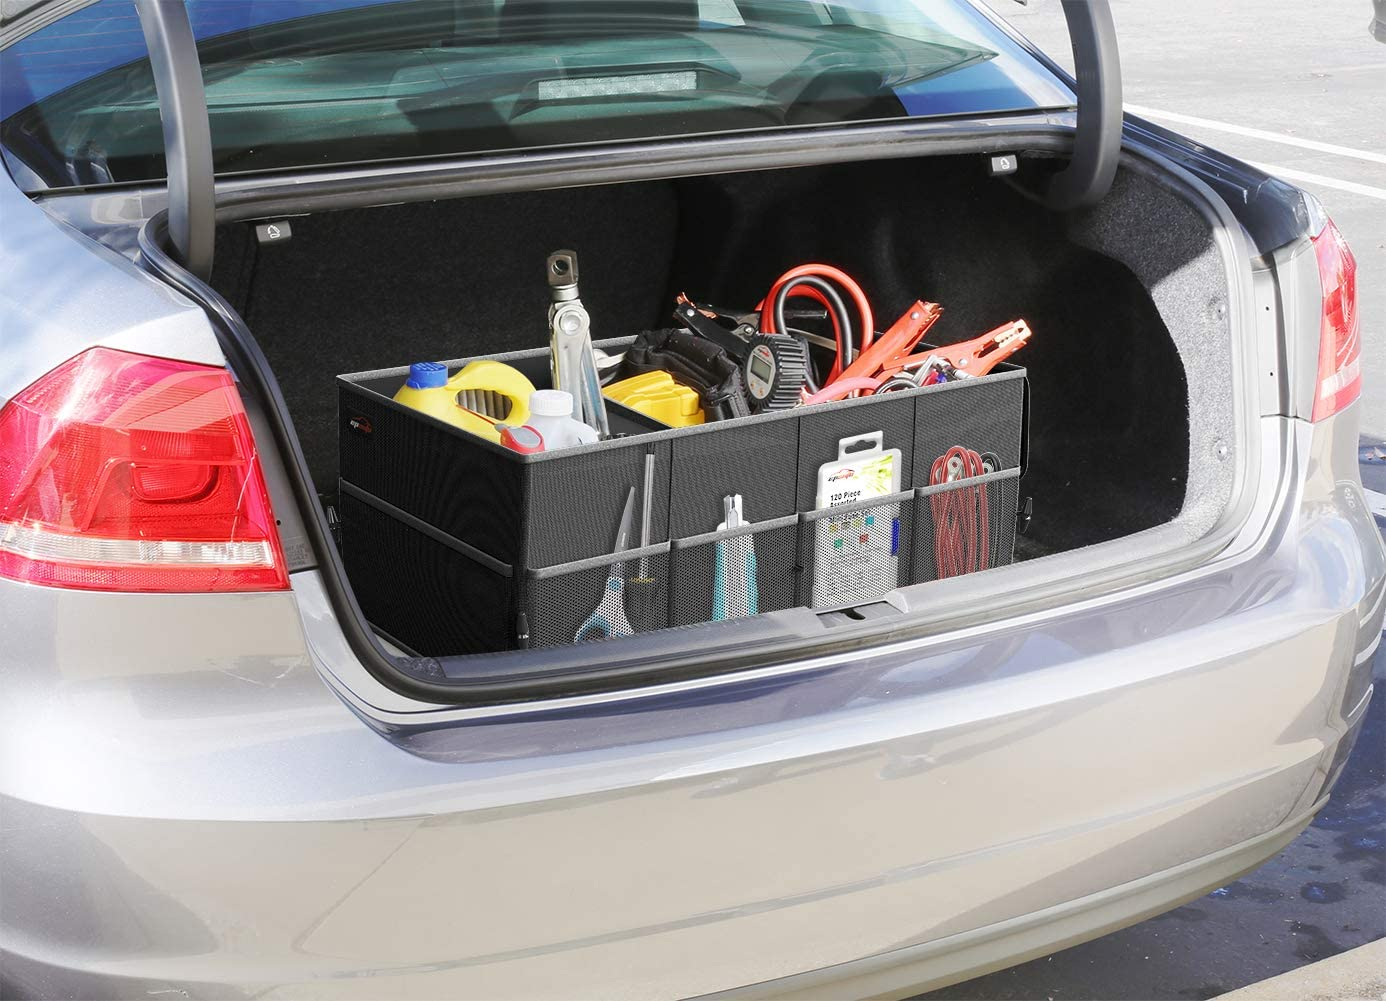 Car Boot Storage For NISSAN Serena Tools Carrier Box Heavy Duty Car Trunk Boot Organizer Tidy Bag Durable No More Mess In Trunk Car Trunk Storage Waterproof